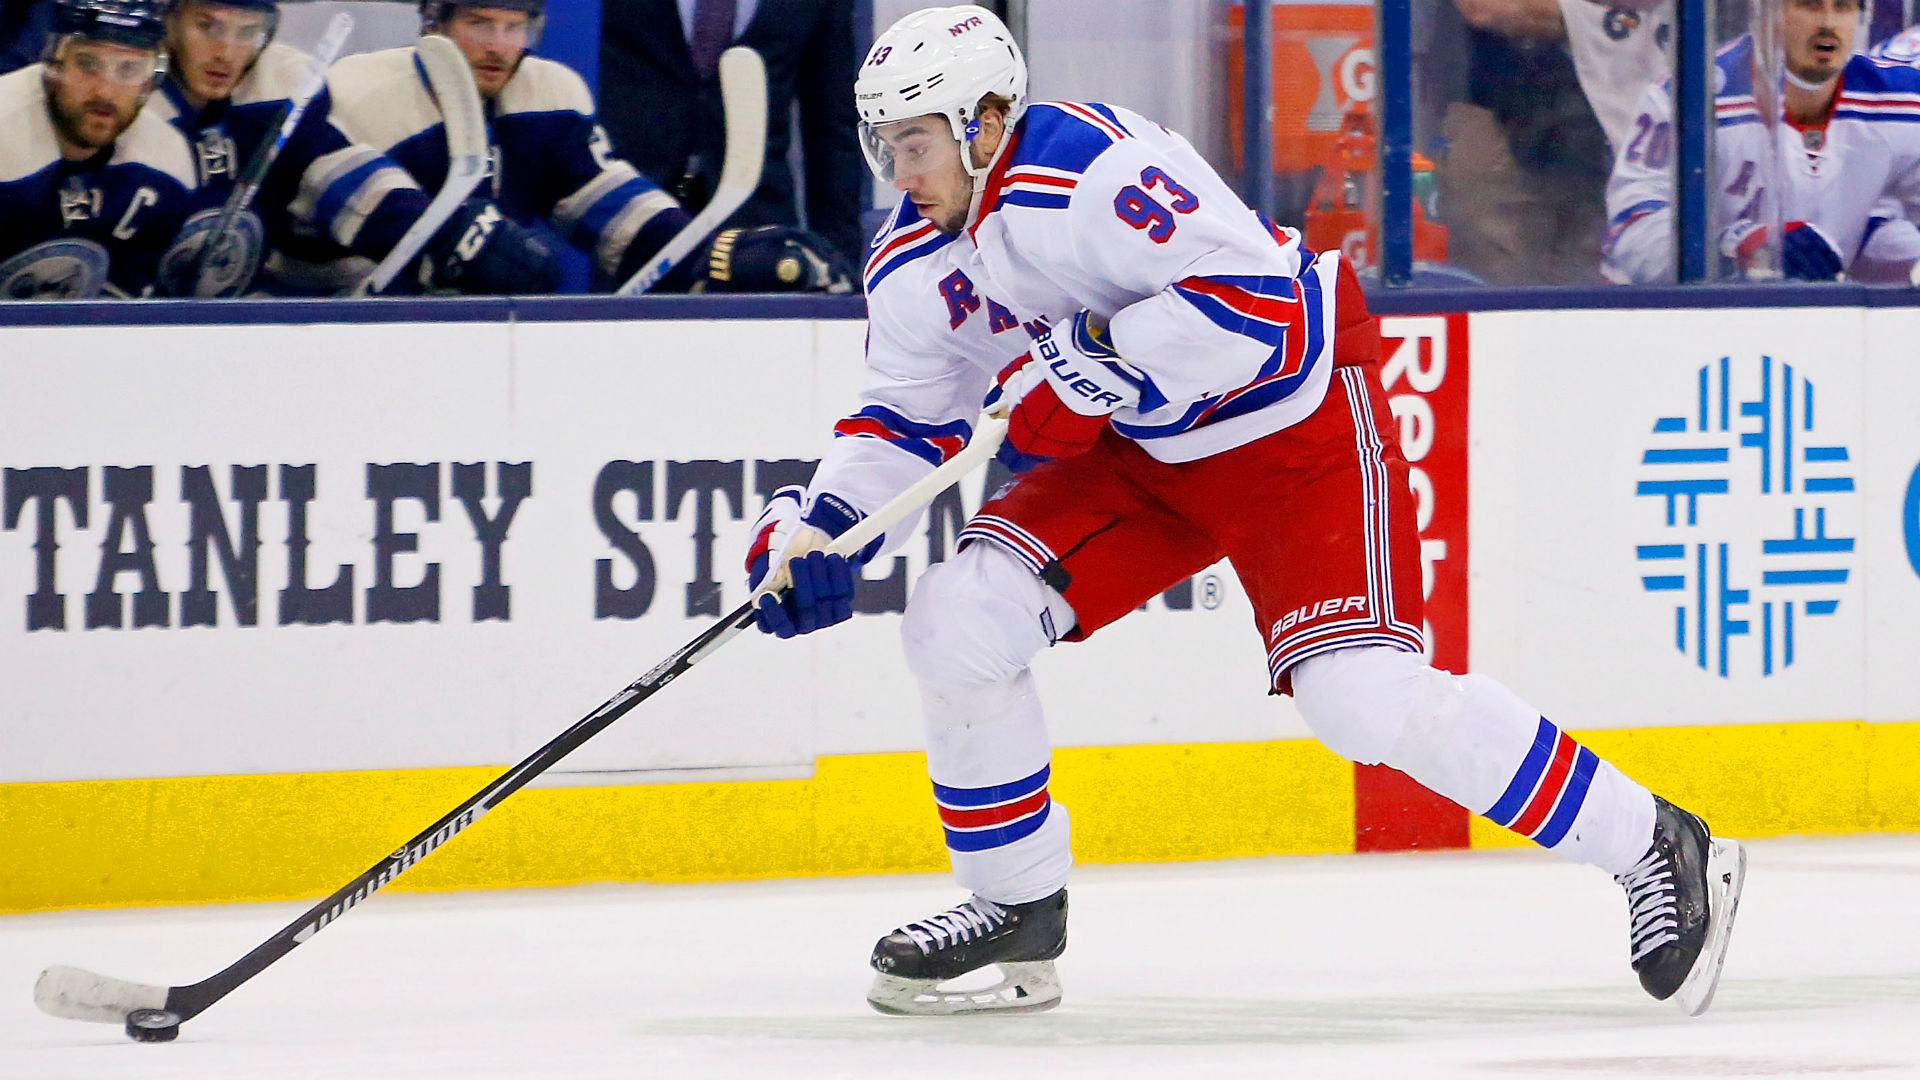 Rangers sign Mika Zibanejad to 5-year, $26.75 million contract extension